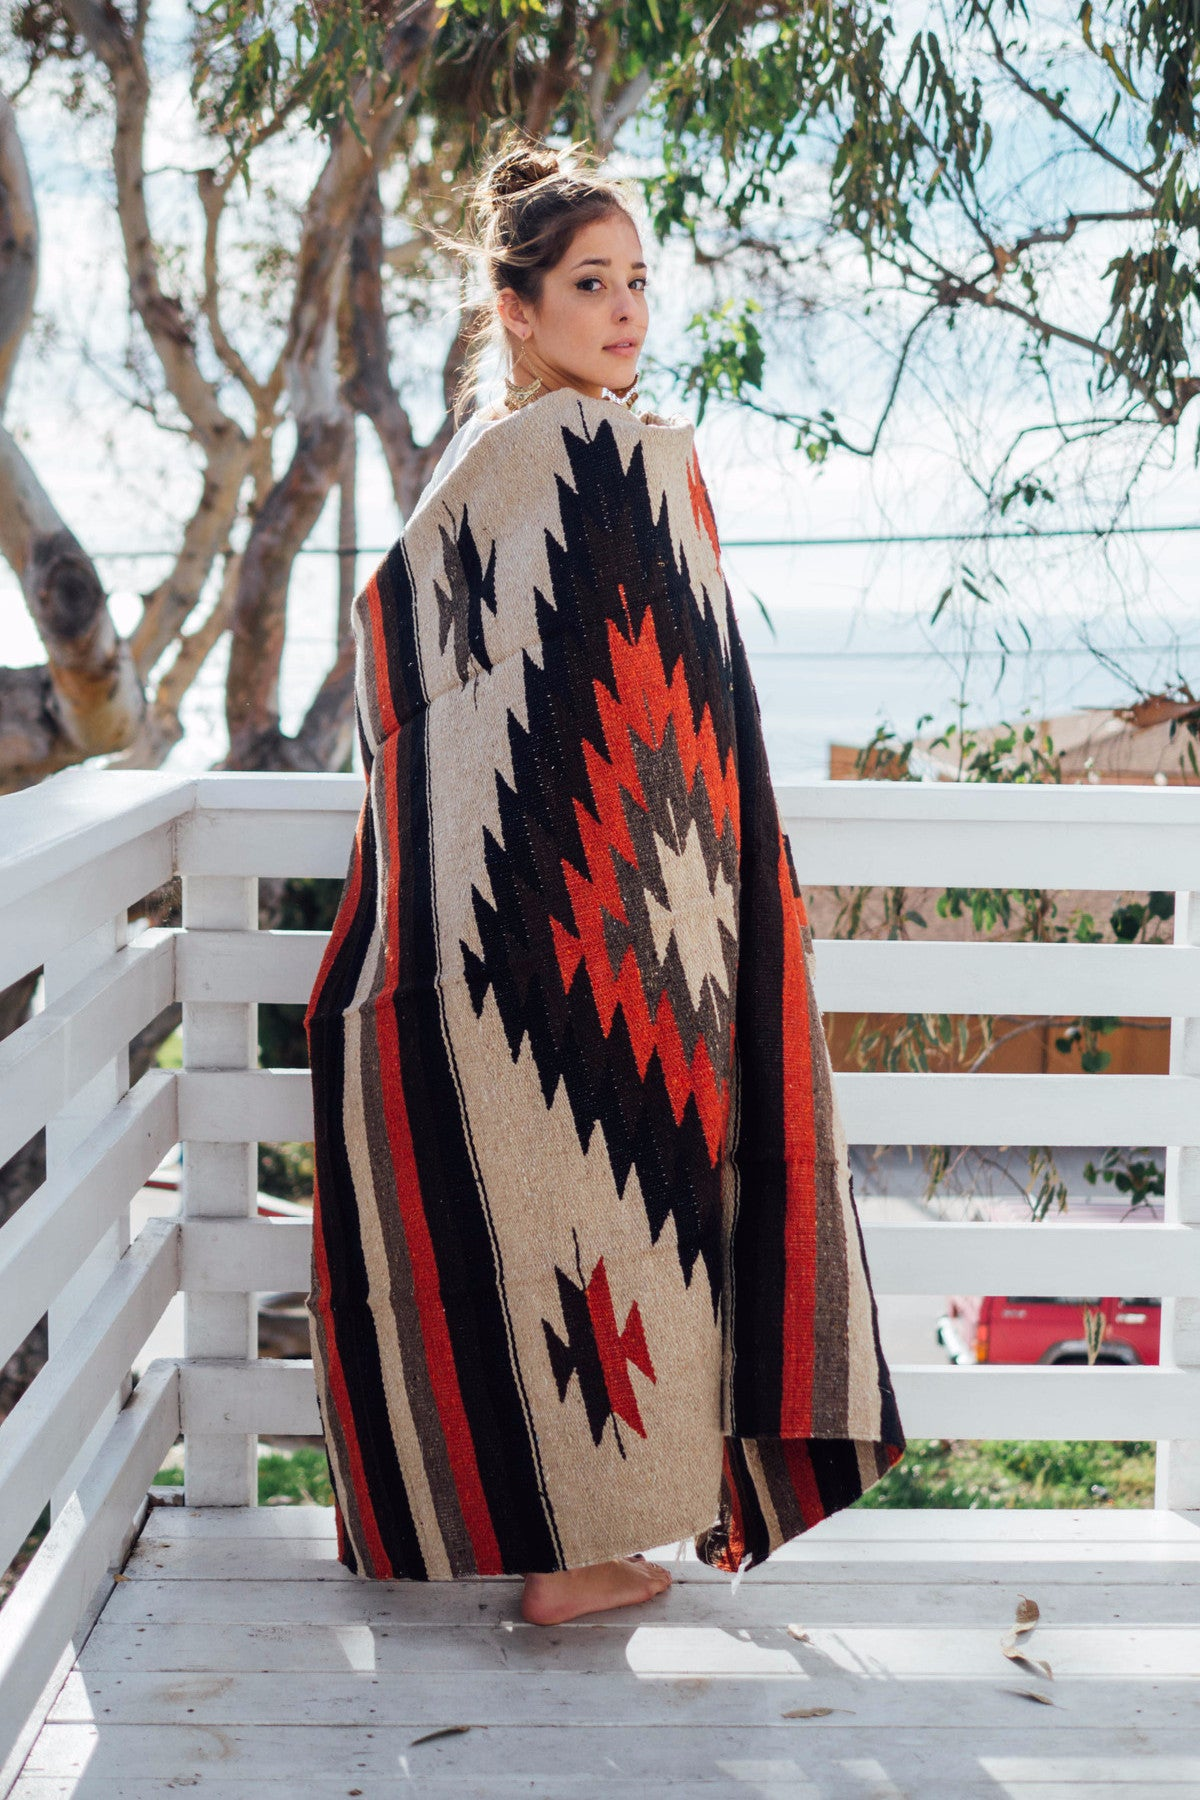 Mexican Indian Diamond Blanket / Brick